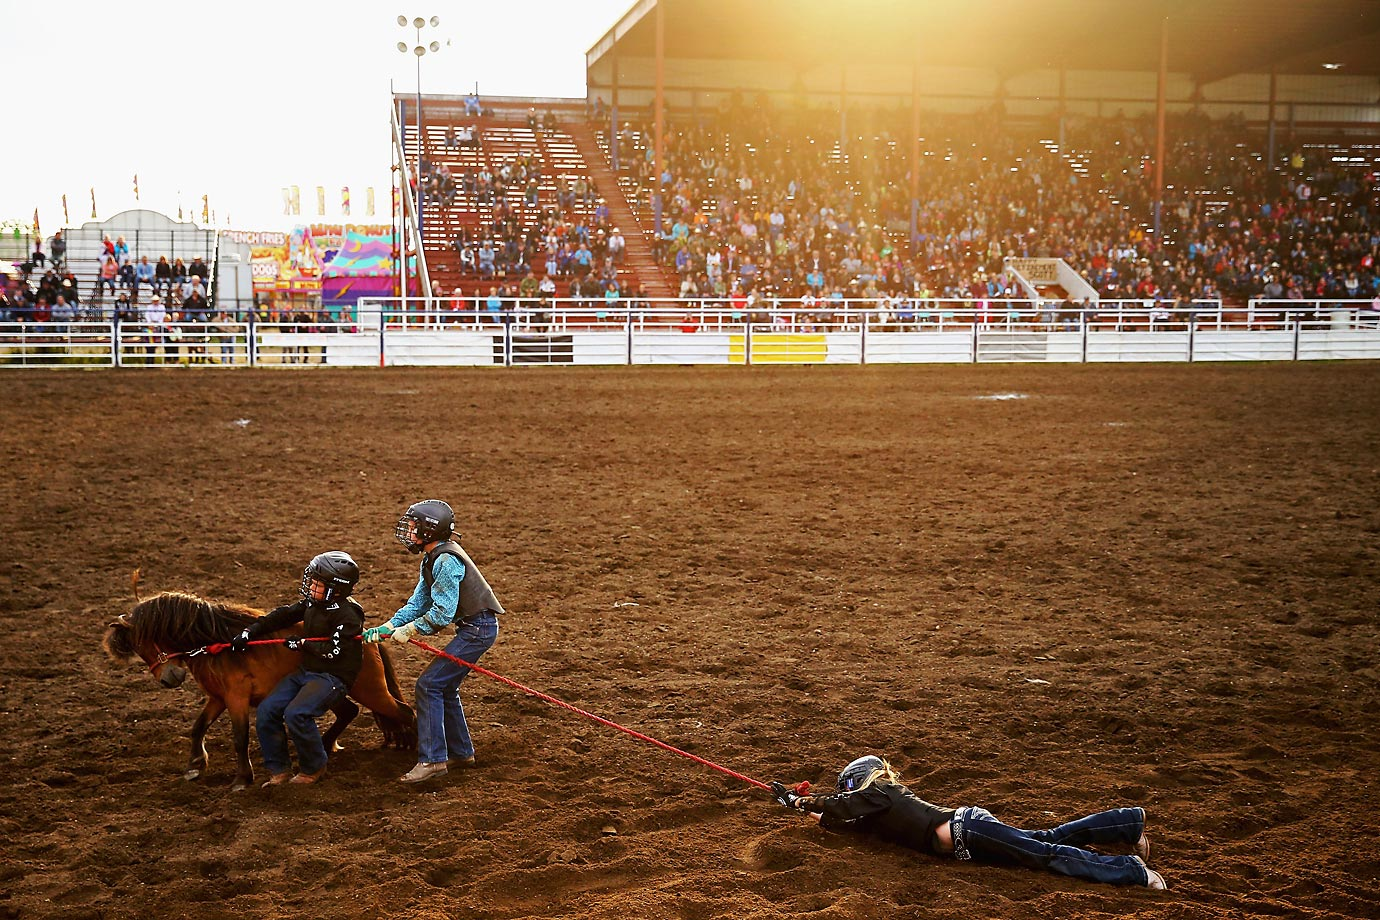 Wild Pony Race competitors during the 62nd Annual Wainwright Stampede in Alberta, Canada.